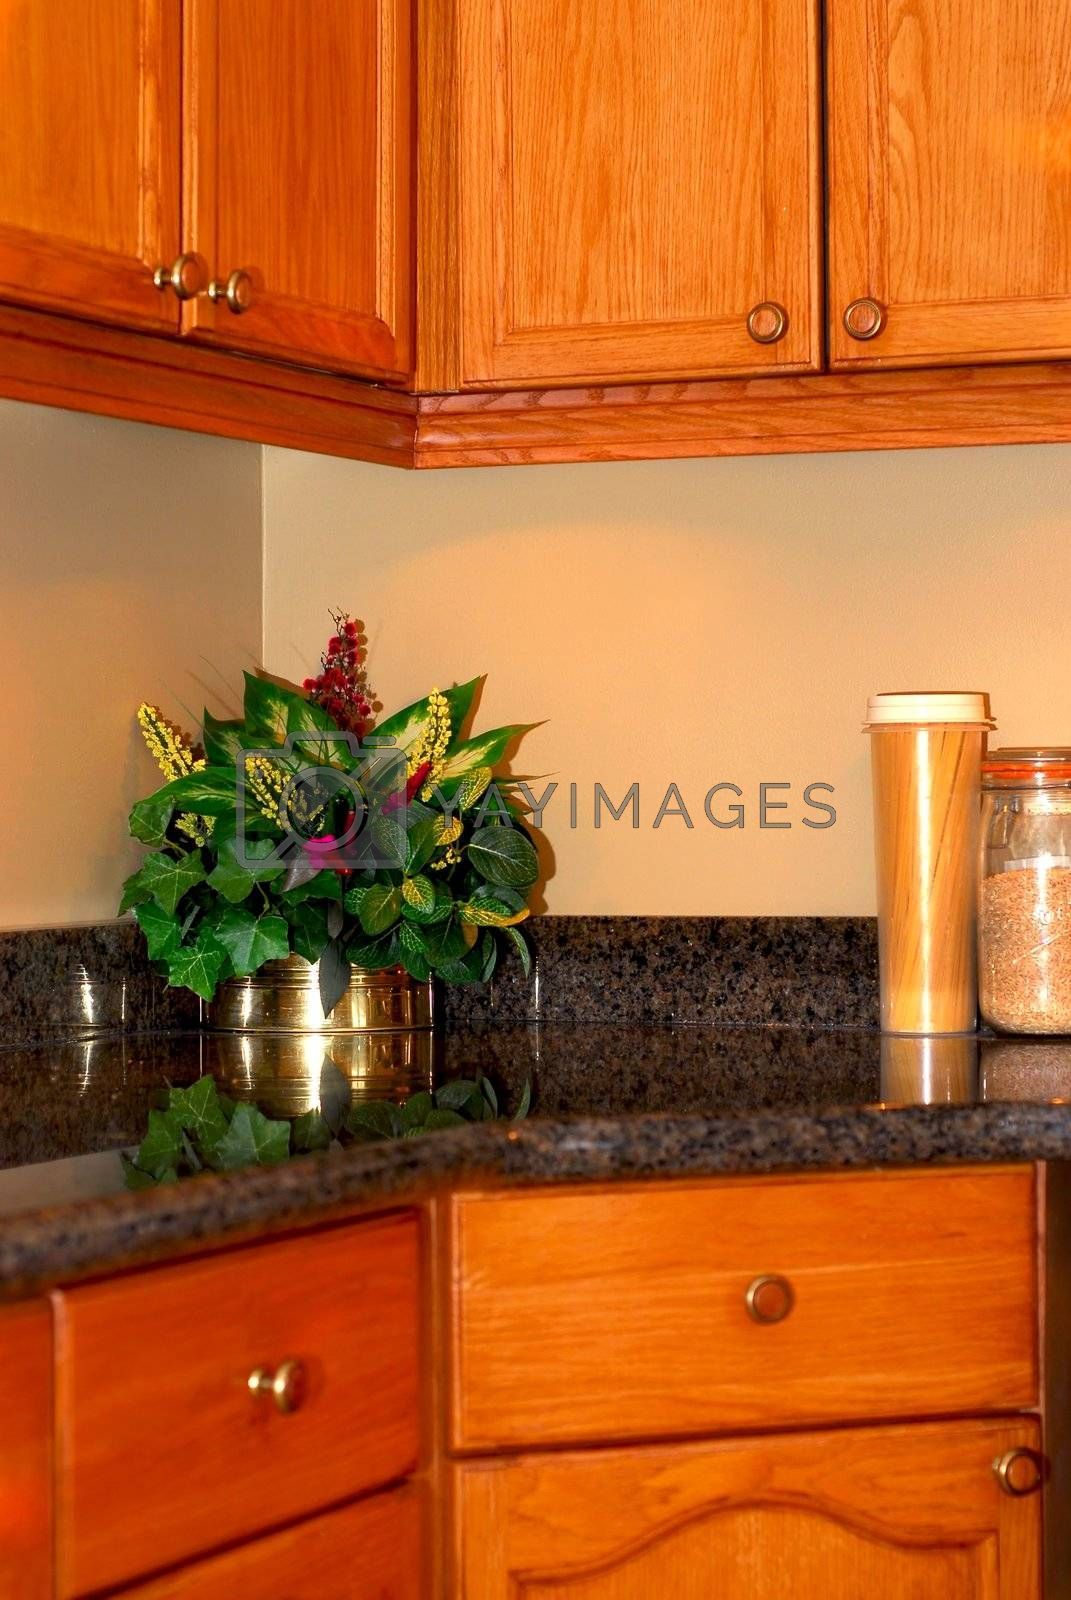 Modern kitchen interior with natural granite countertop and oak cabinets